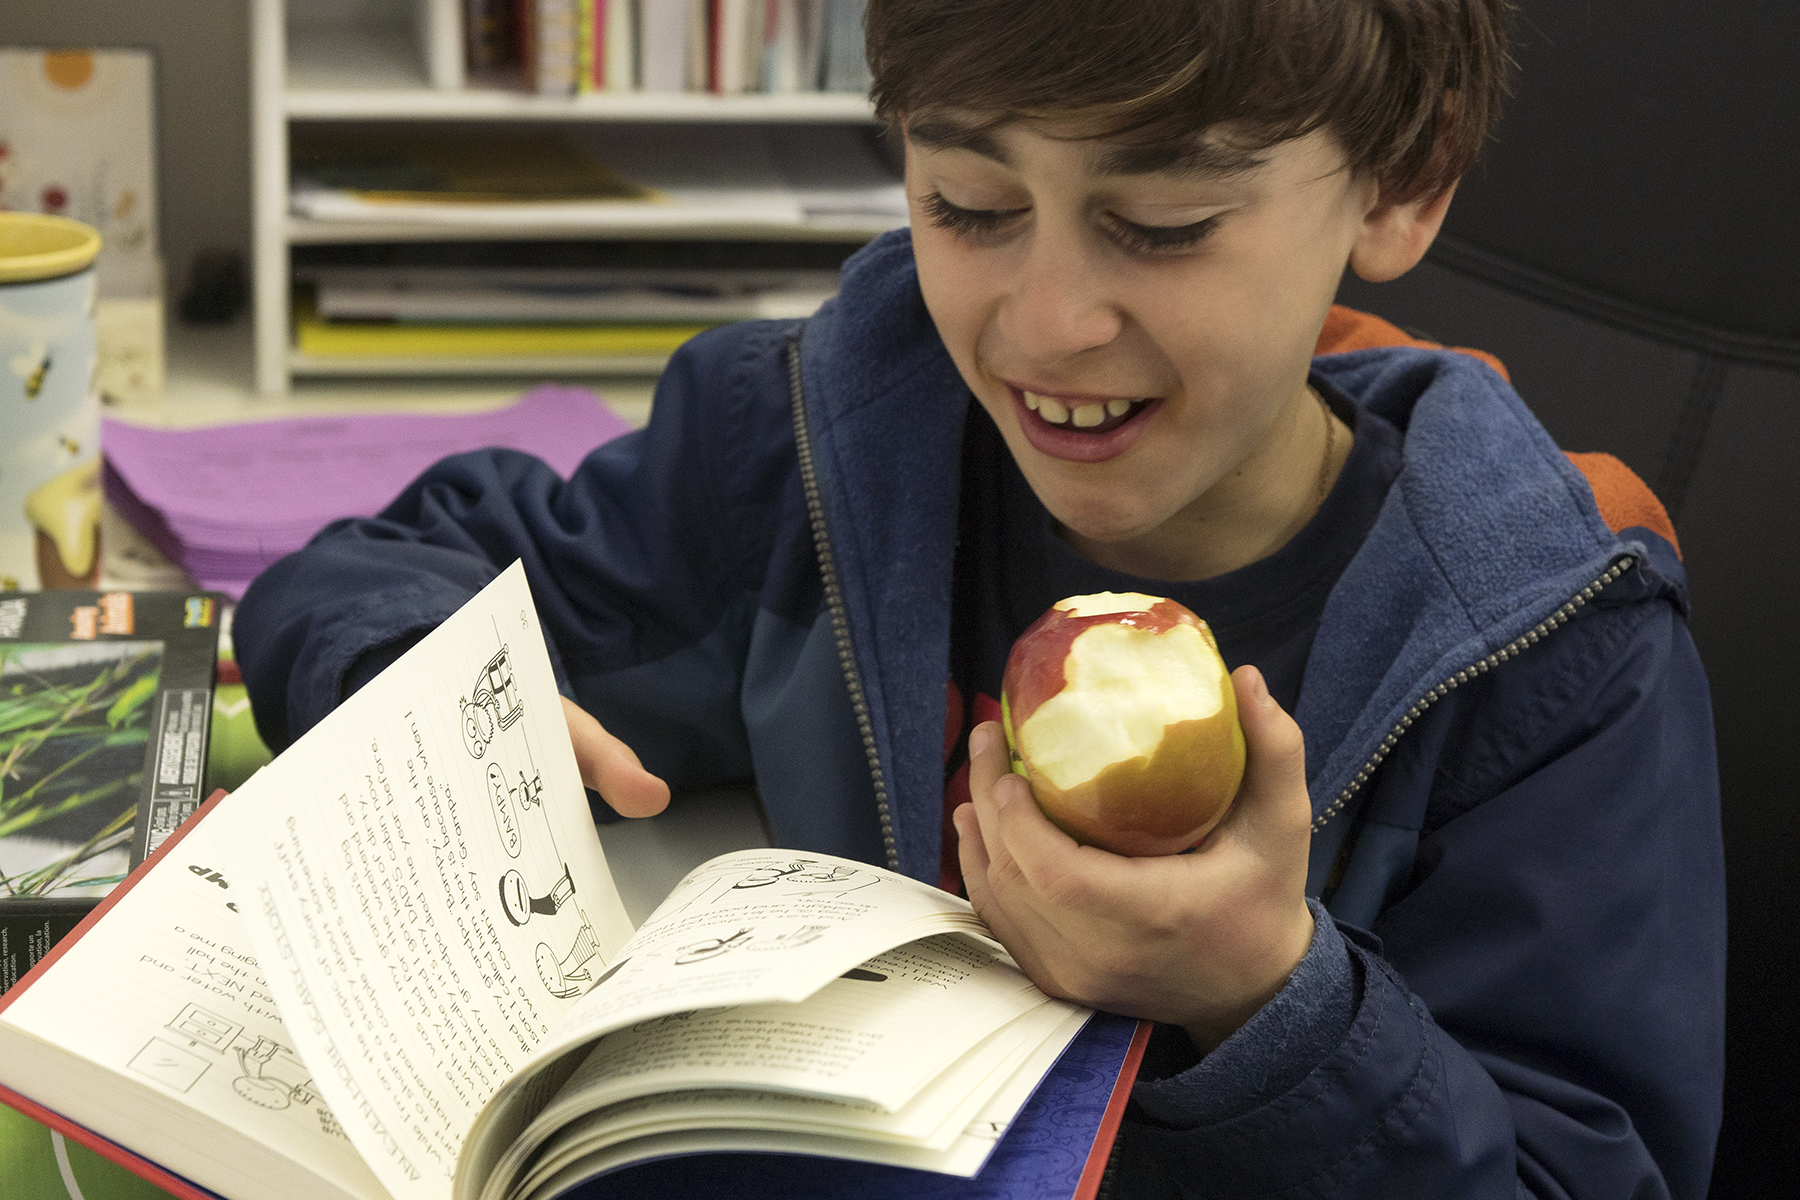 Student reading a chapter book and eating an apple